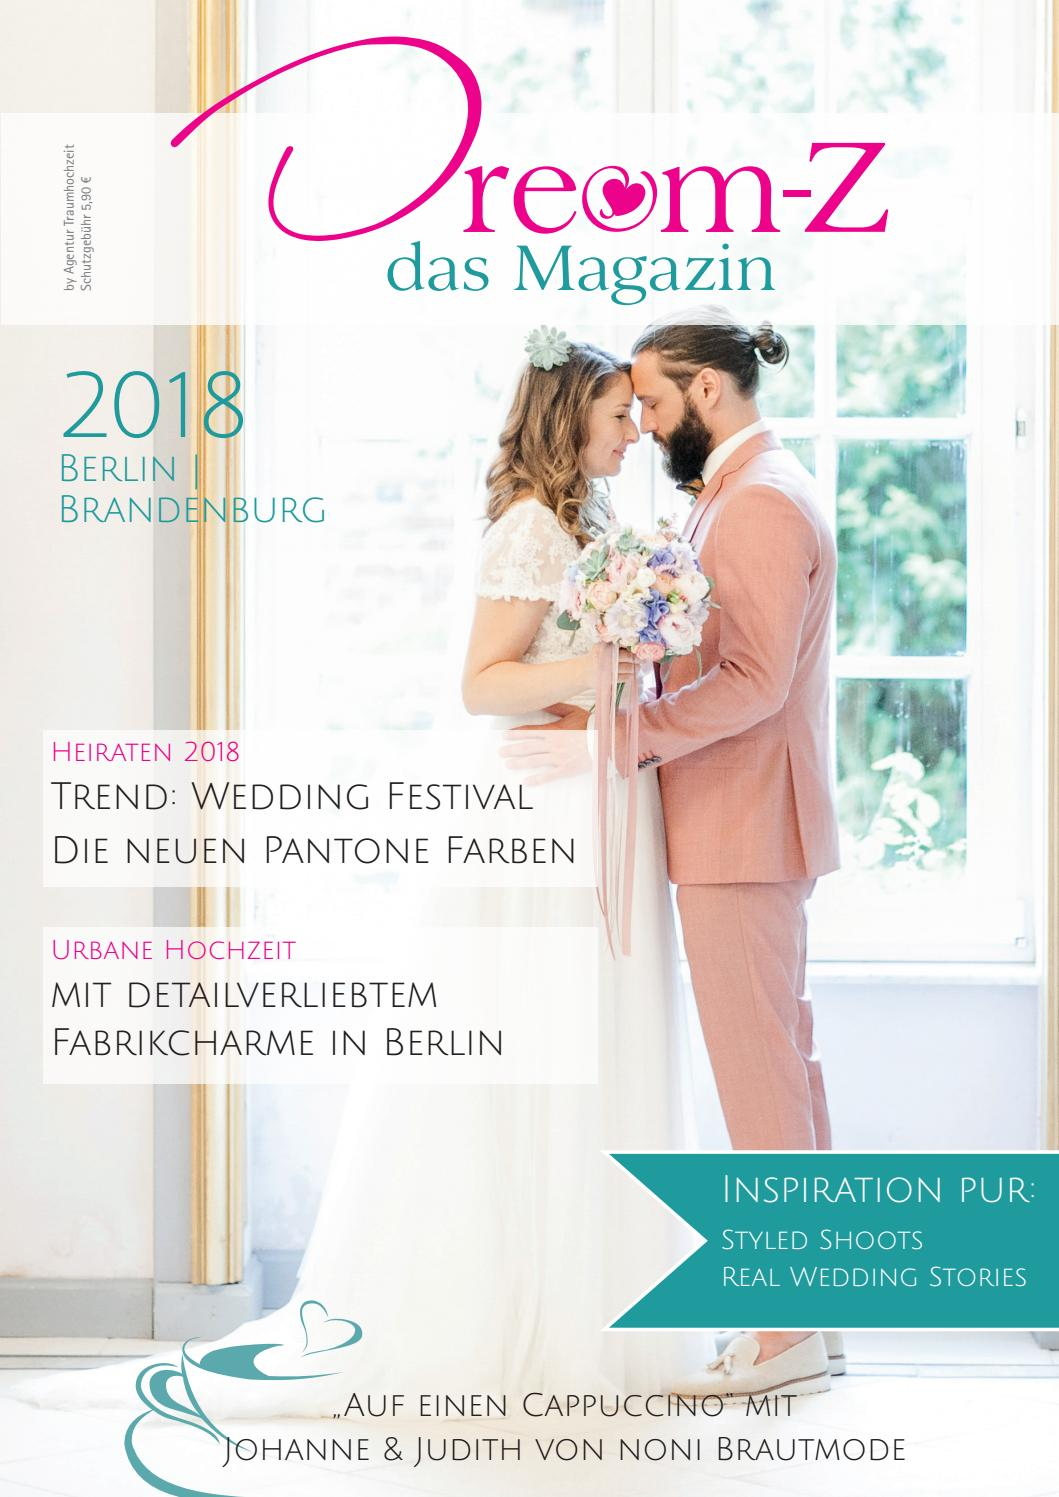 Dream-Z das Magazin 2018 BERLIN by agentur-traumhochzeit - issuu